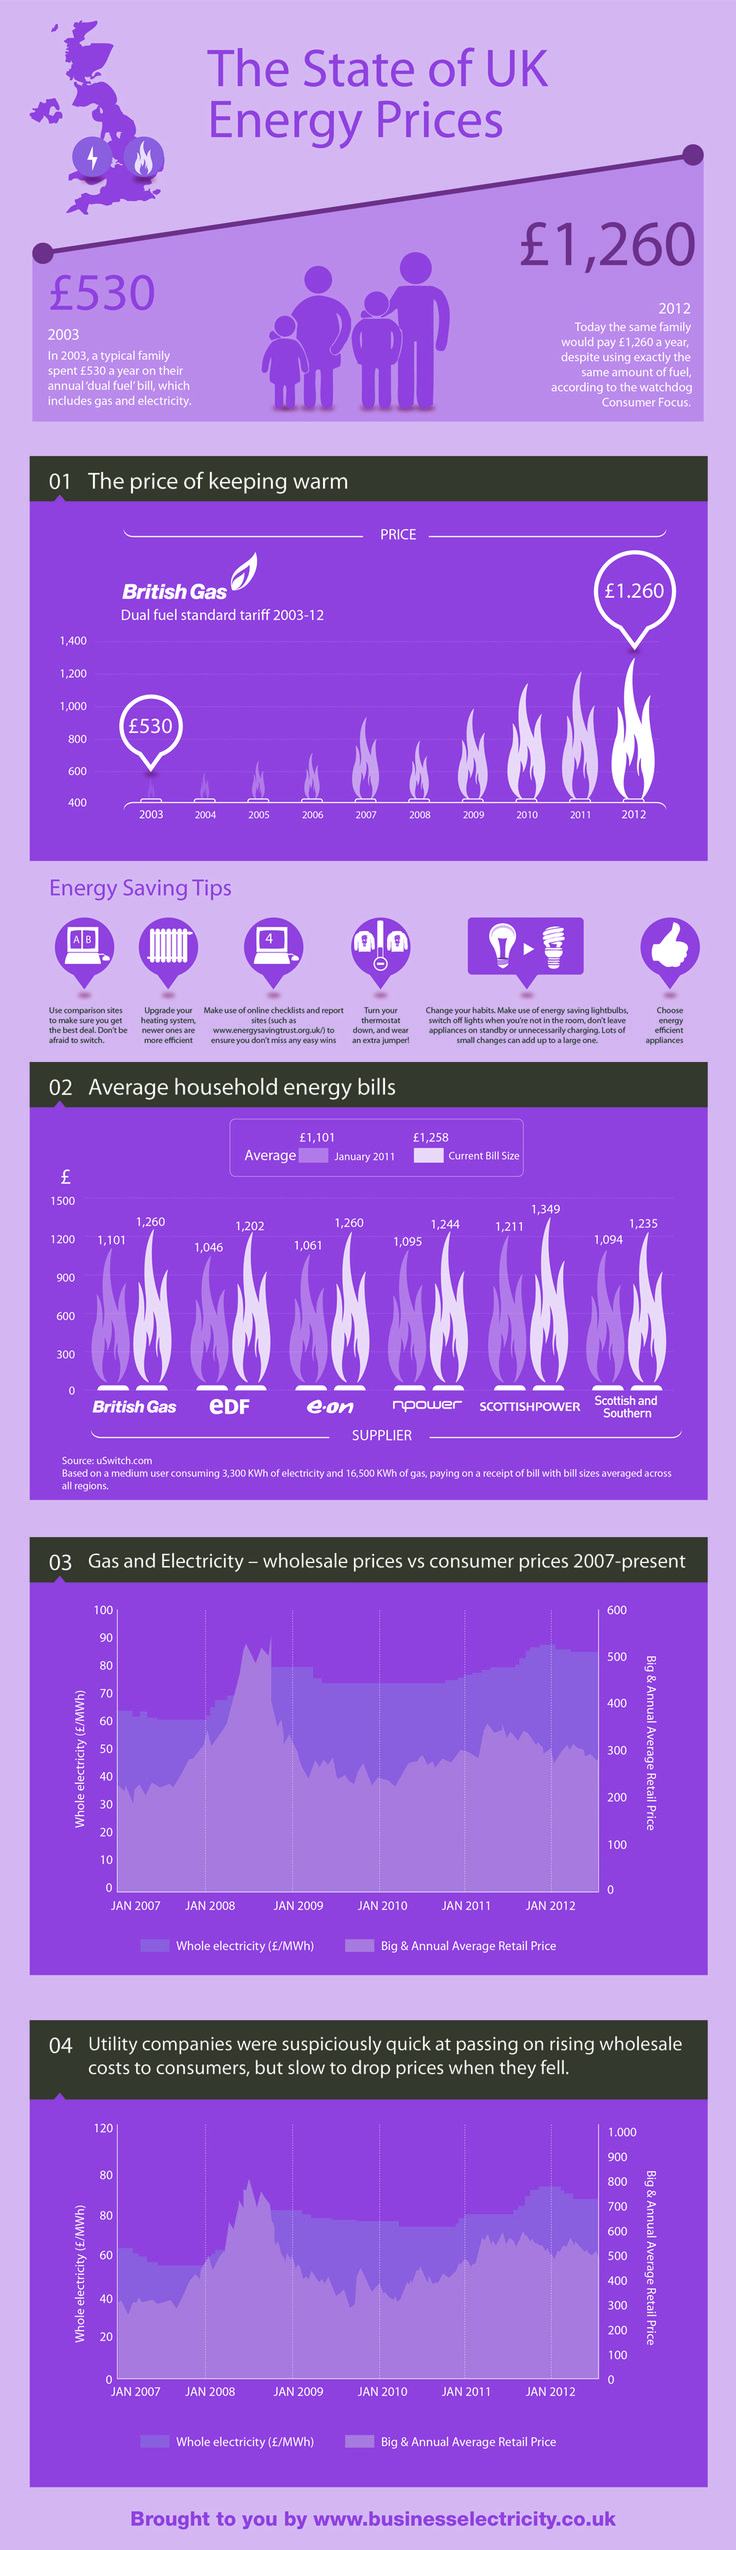 The Stats of UK Energy Prices [INFOGRAPHIC] #UK #energy #prices